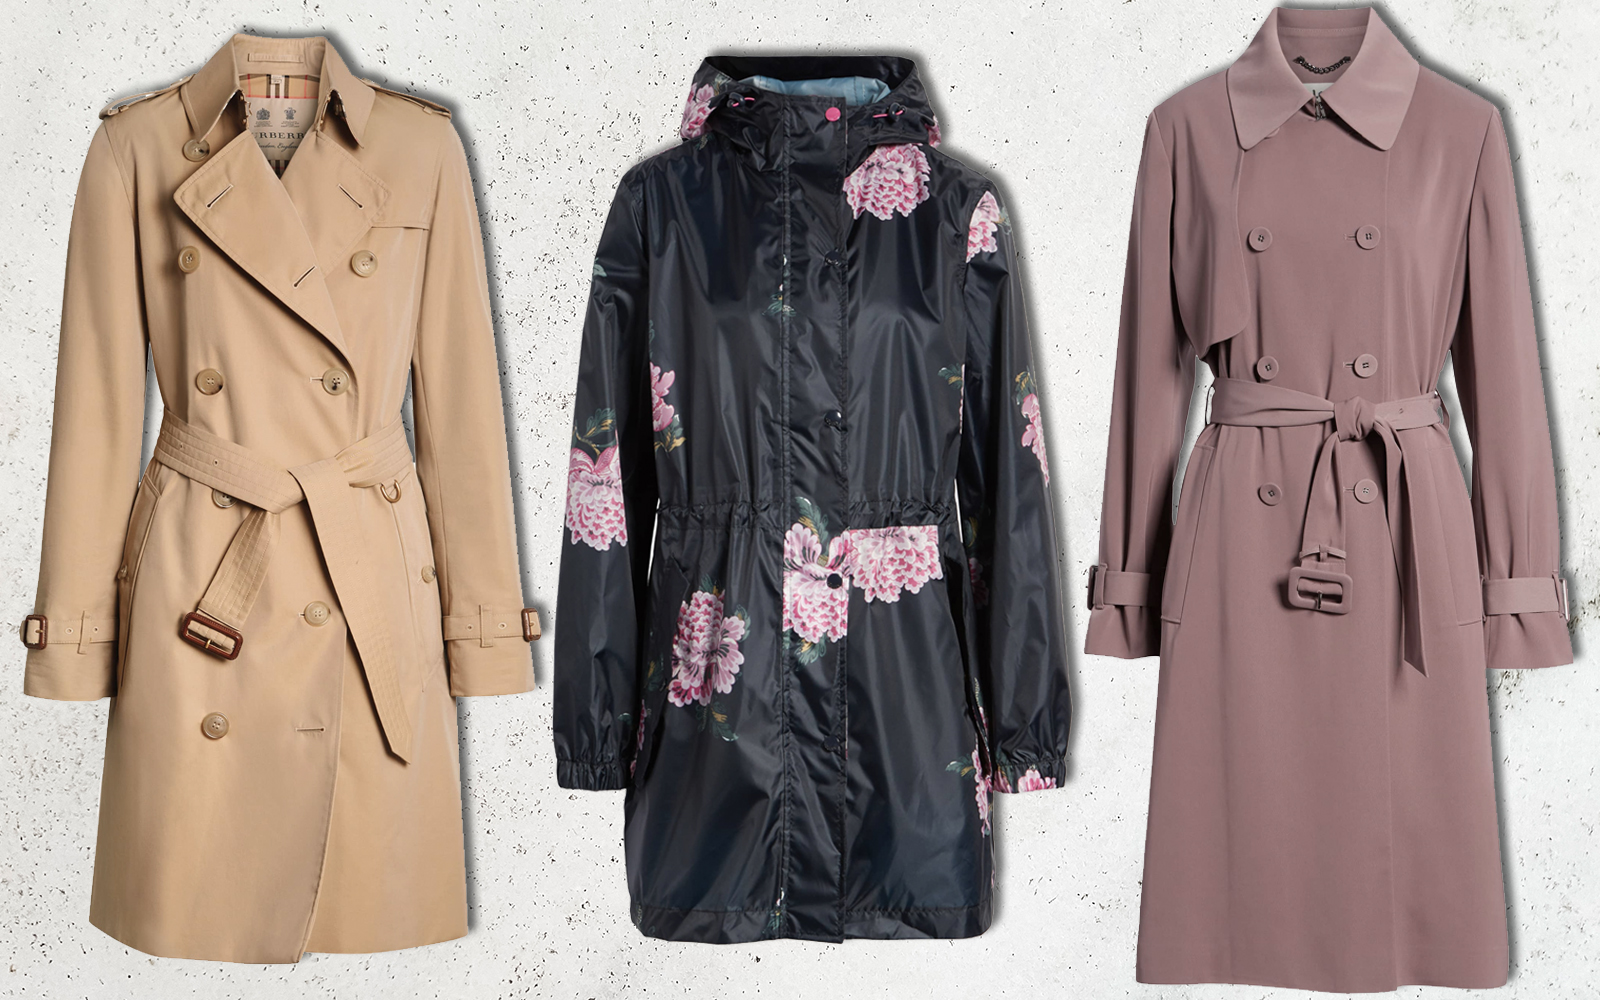 14 Women's Rain Jackets That Are Actually Cute